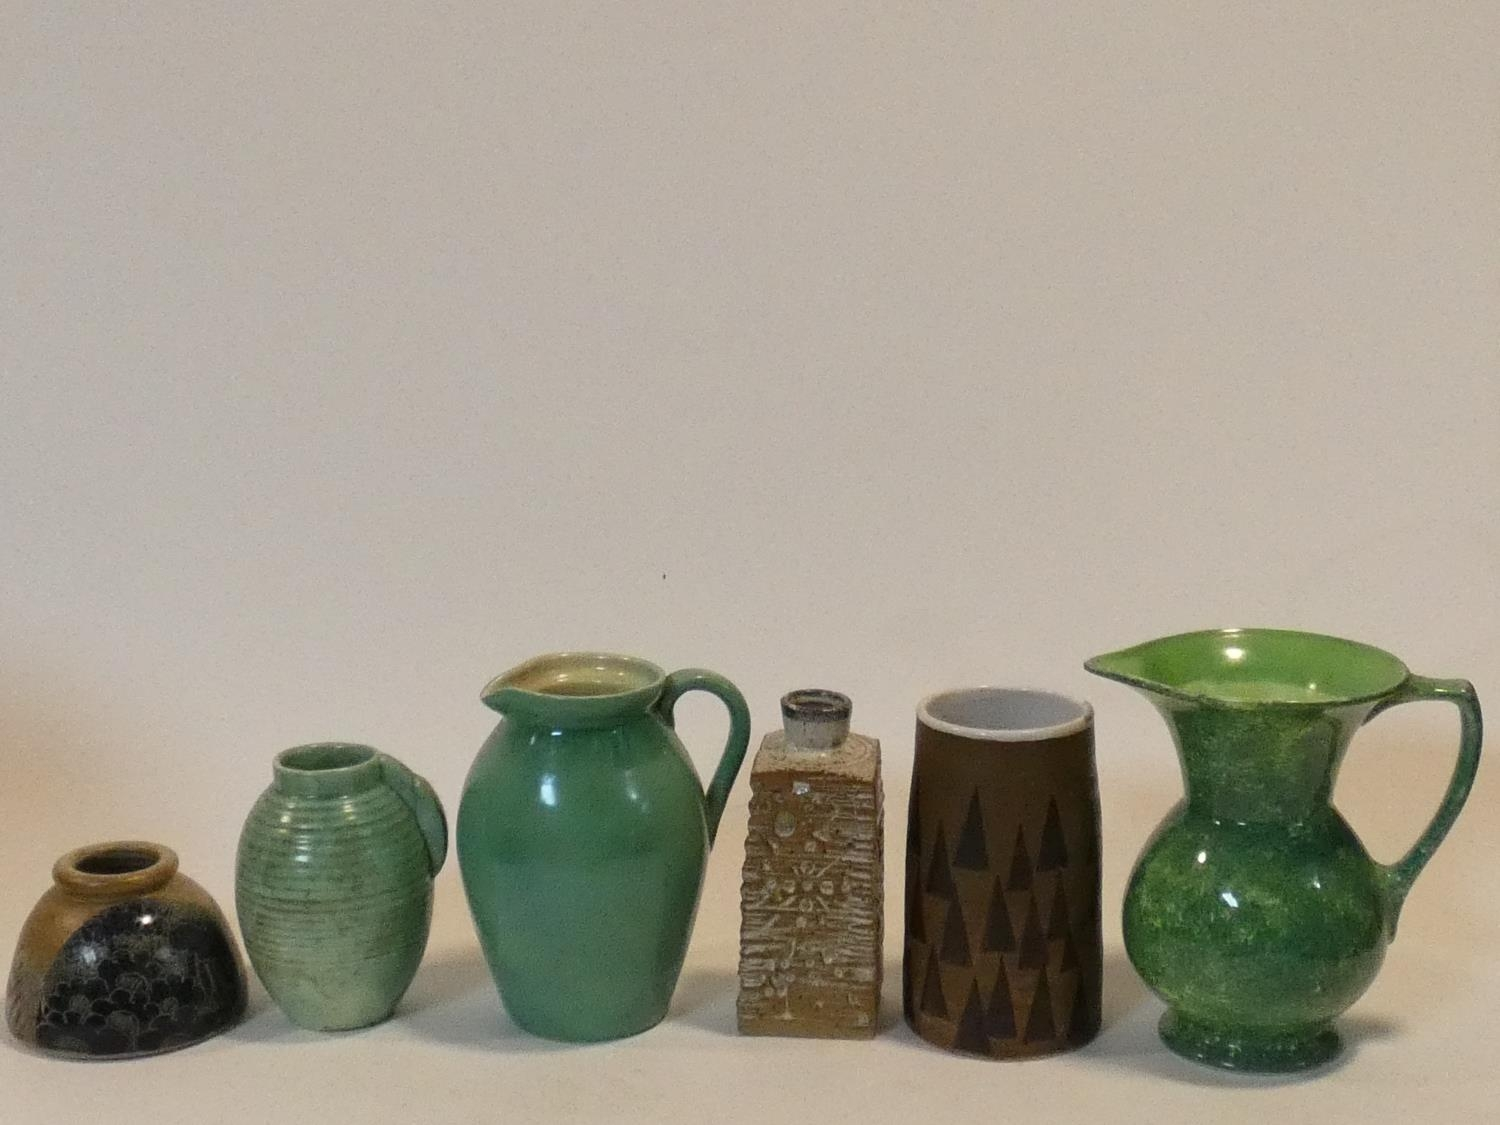 A miscellaneous collection of various Art Pottery jugs and vases. H.20cm (tallest)